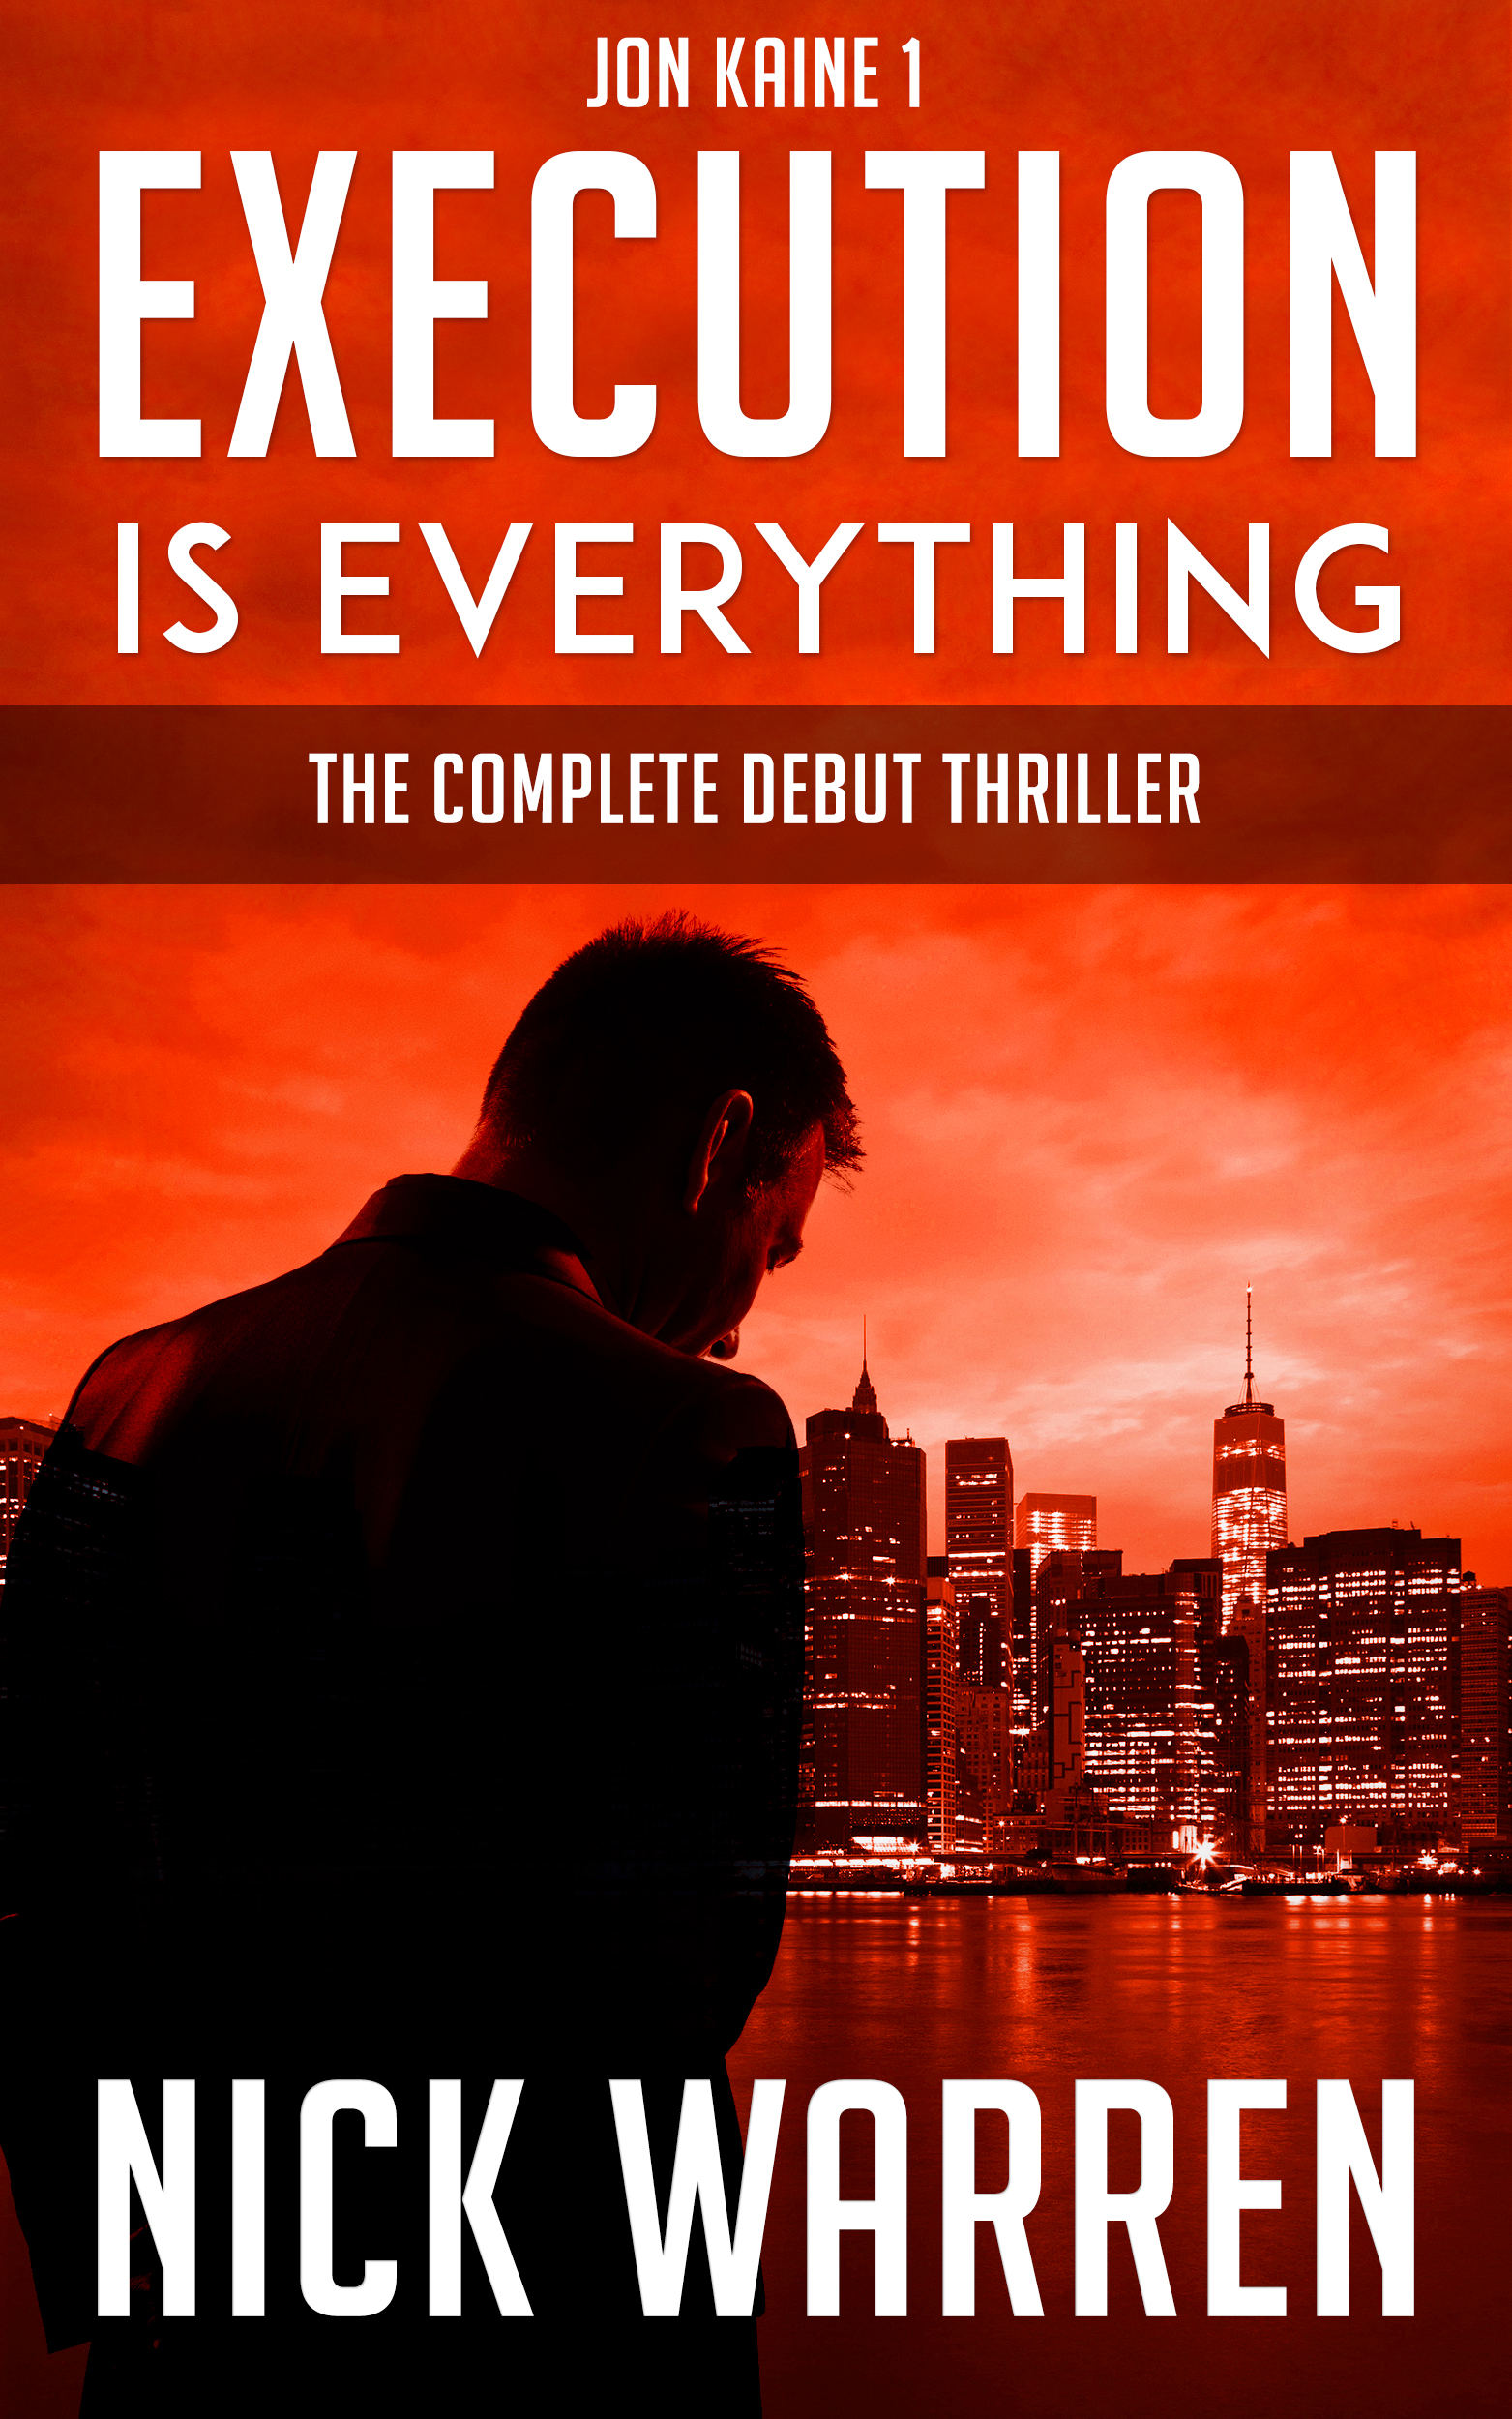 Want to know what happens next? Get  The Complete Execution Is Everything   from Amazon.